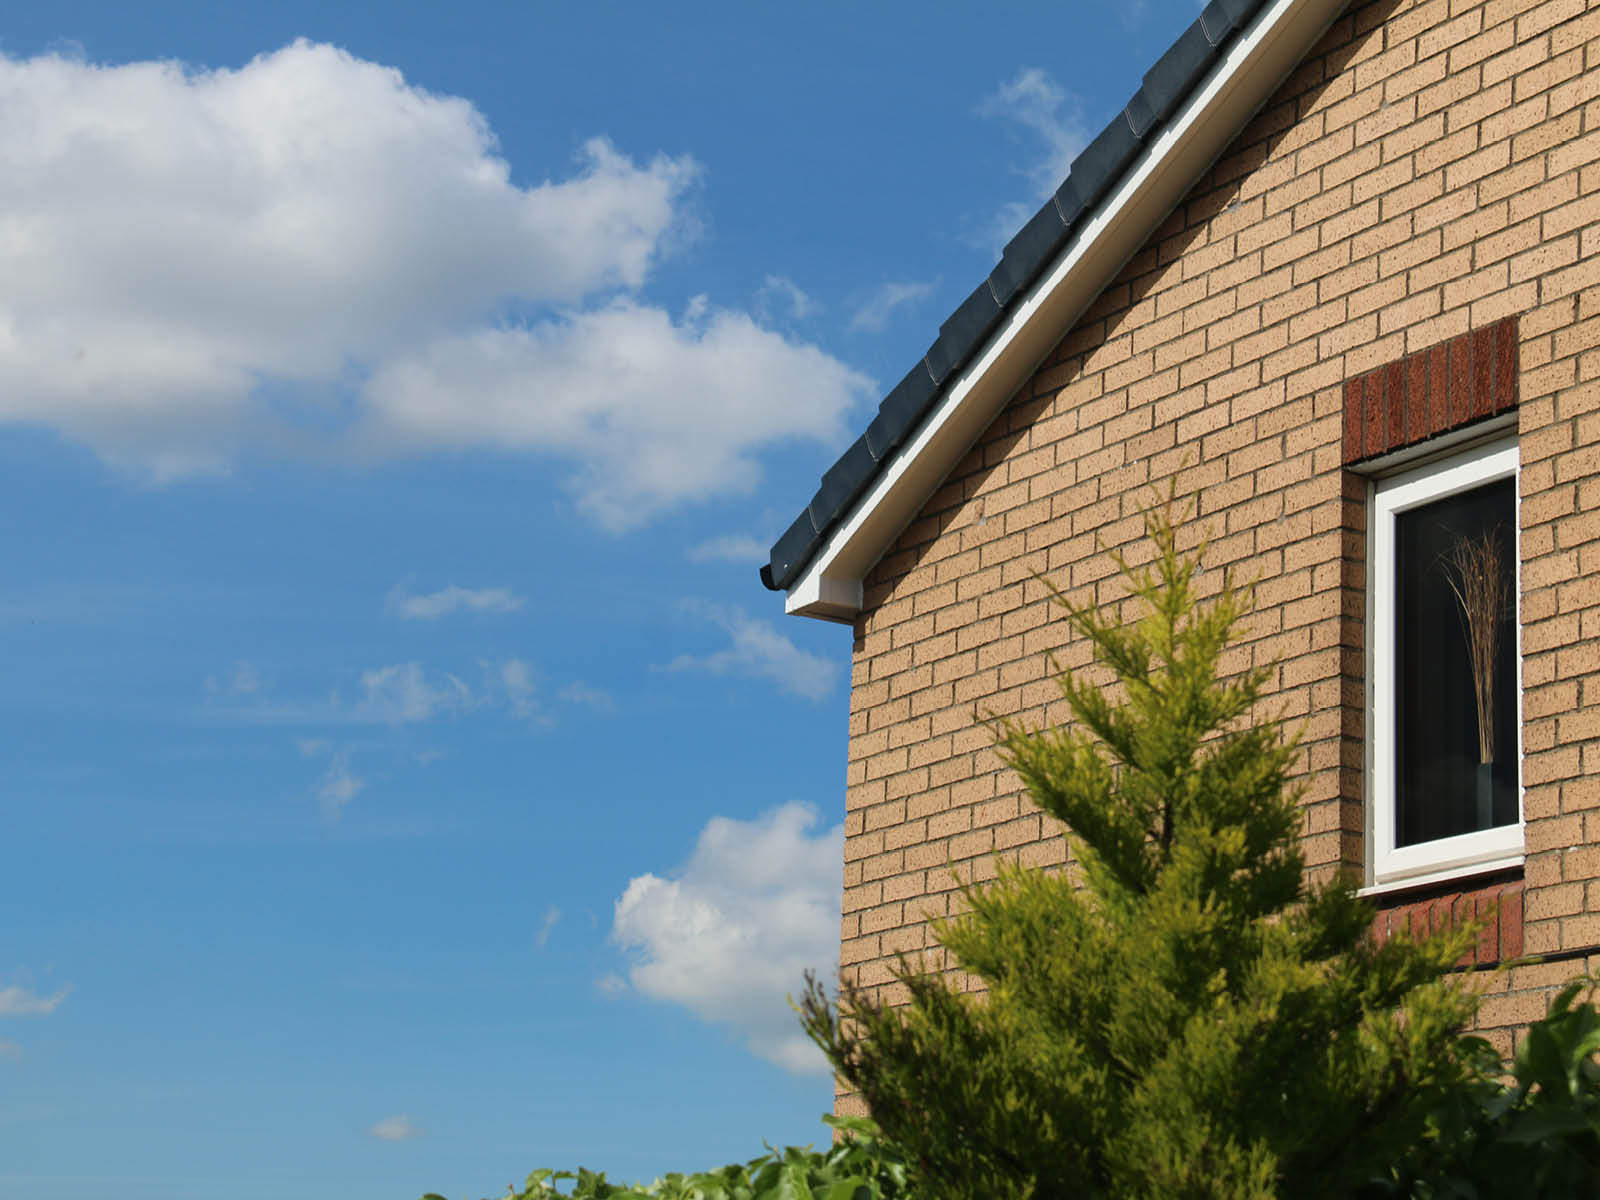 white roofline with black detailing